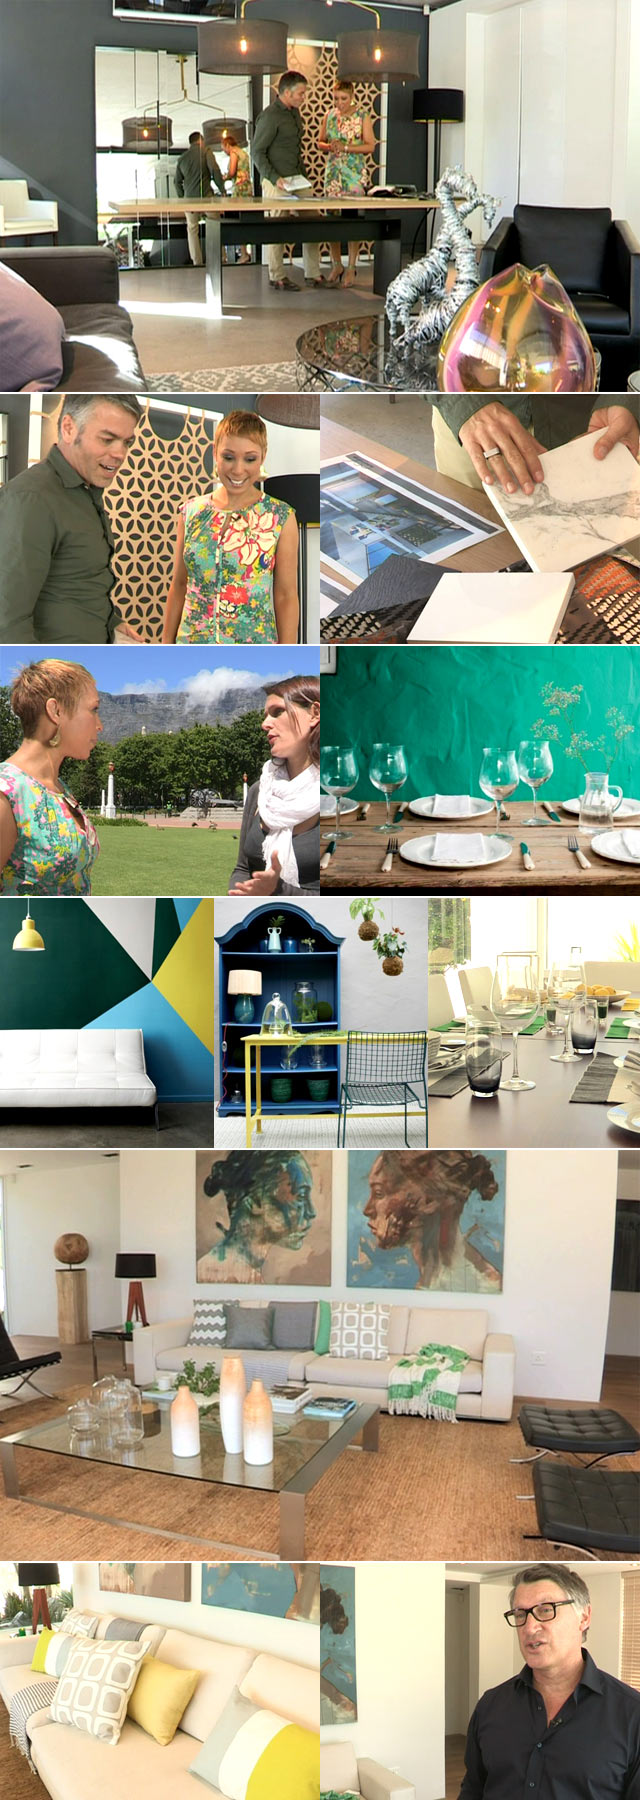 Decor trends and the colour pallet for the Top Billing Dream Home